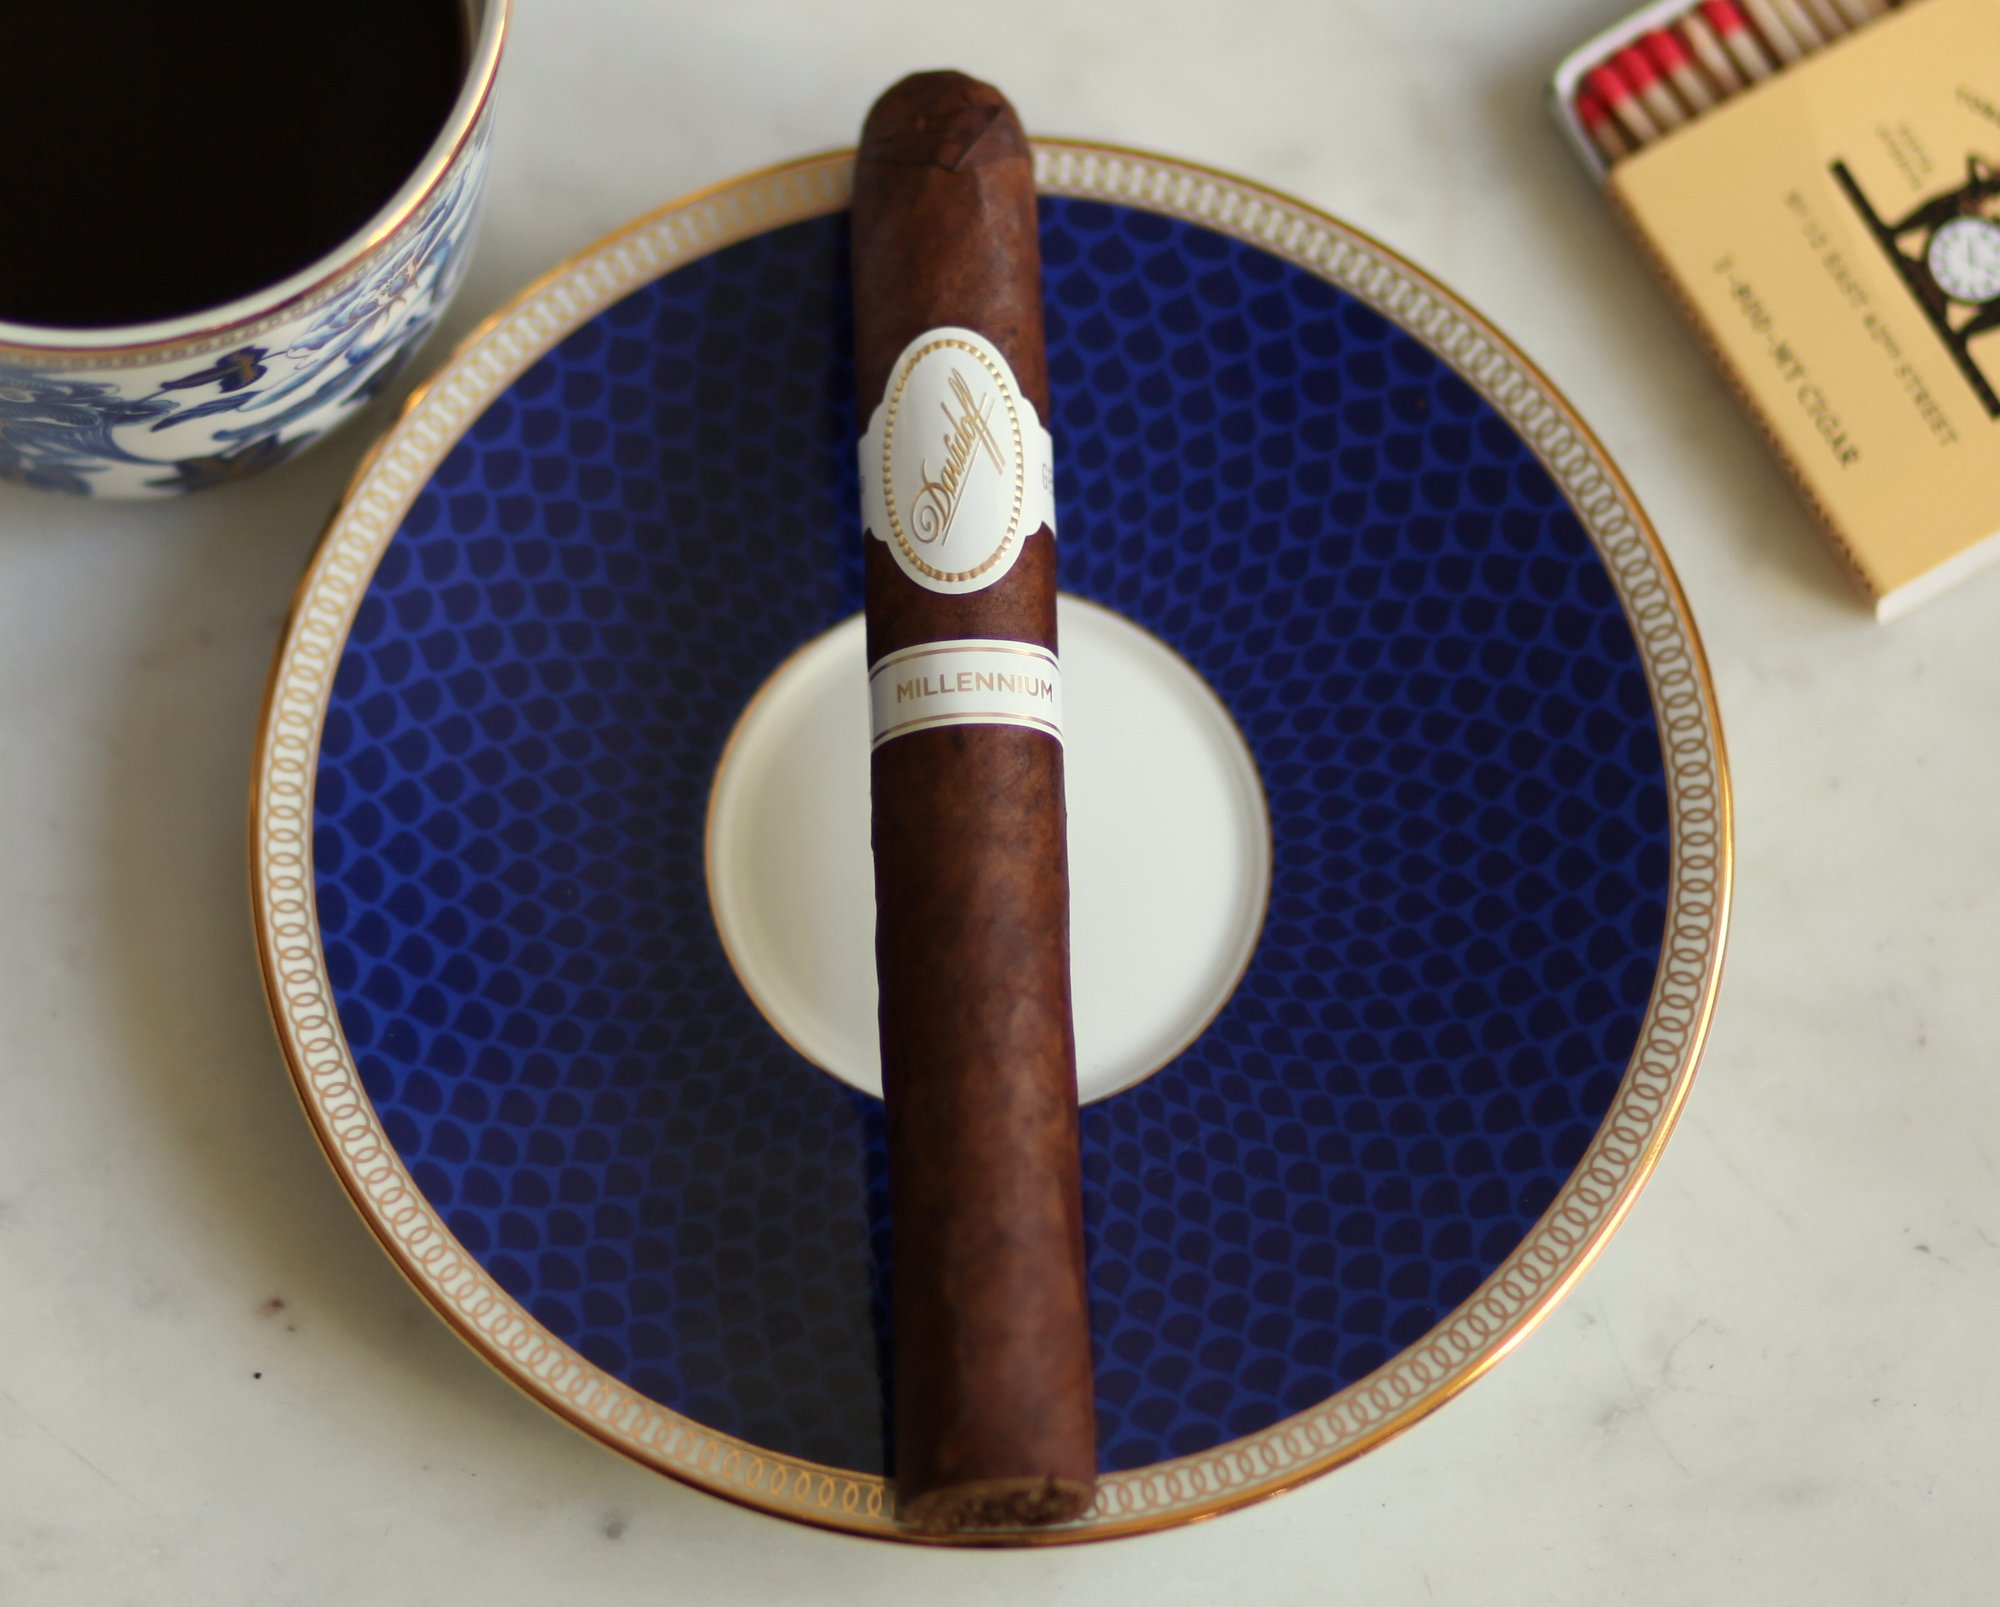 Davidoff Millennium Blend Toro Review Closeup